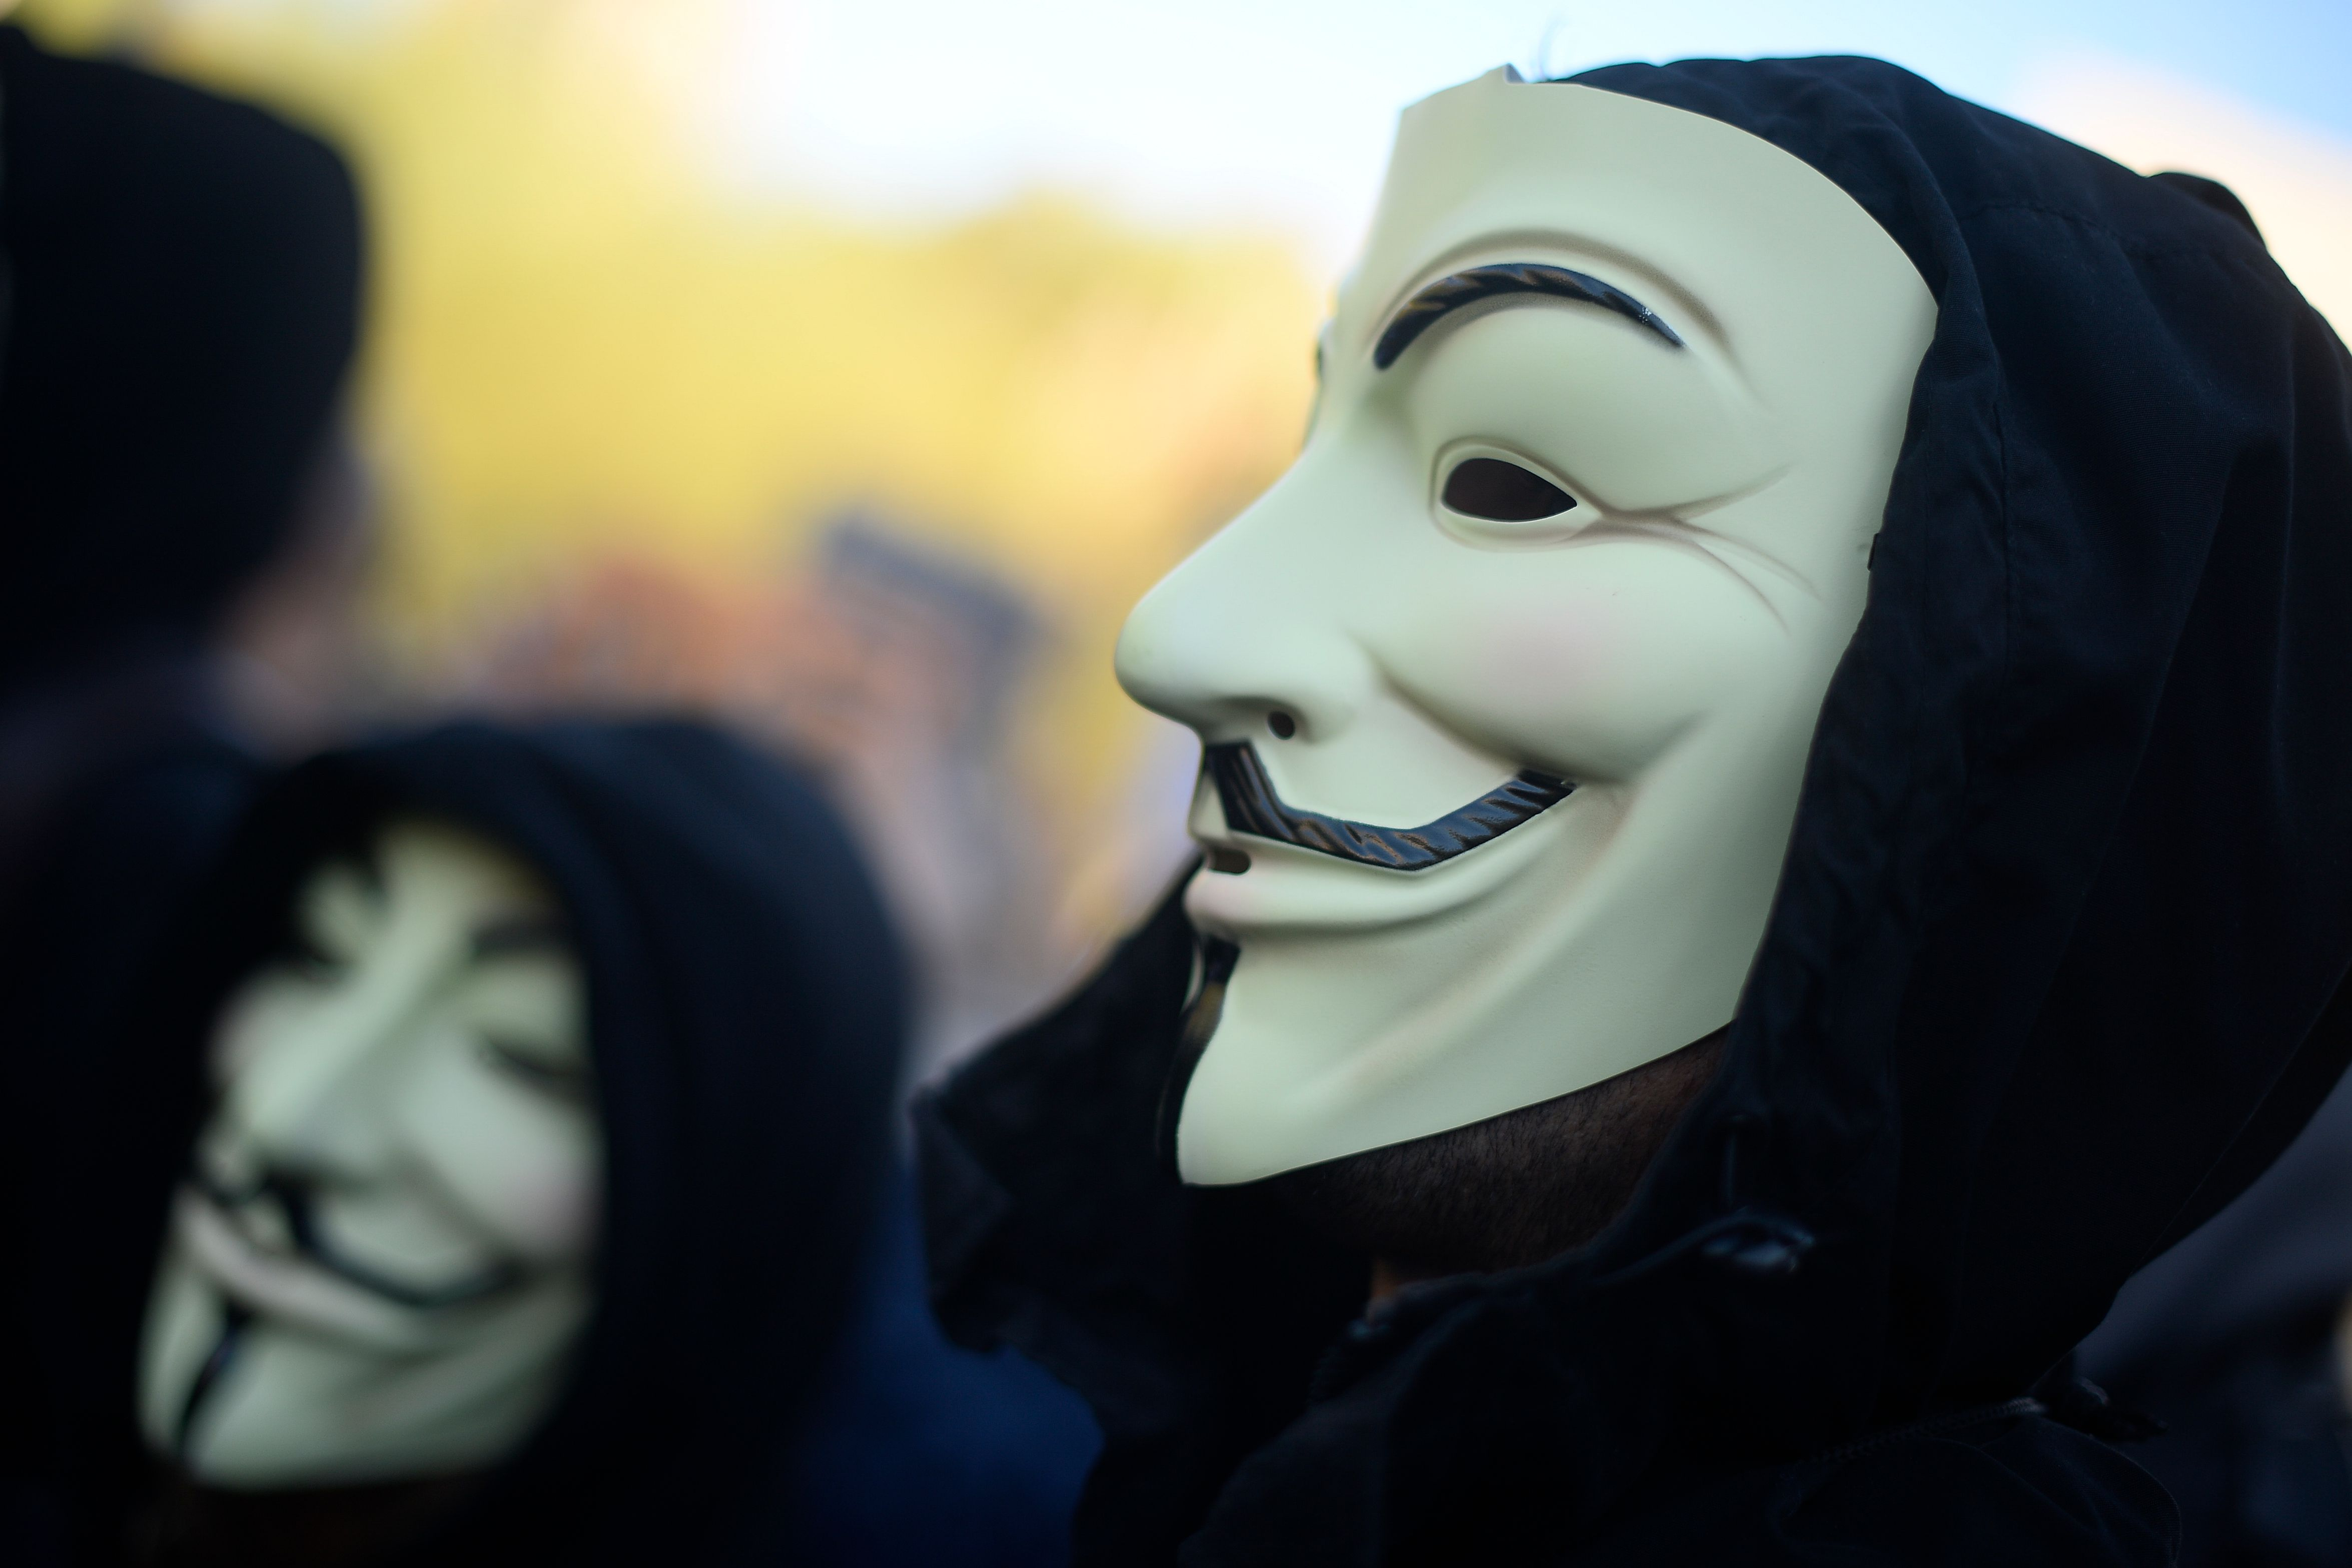 IT News, Solutions and Support | Proactive ComputingHacker Group Anonymous Threatens Cyberattack On US Govt. Again, Announces Target WebsitesPost navigation@PCH3lp on TwitterCategory SearchRecent PostsStatCounterArchivesCatregories